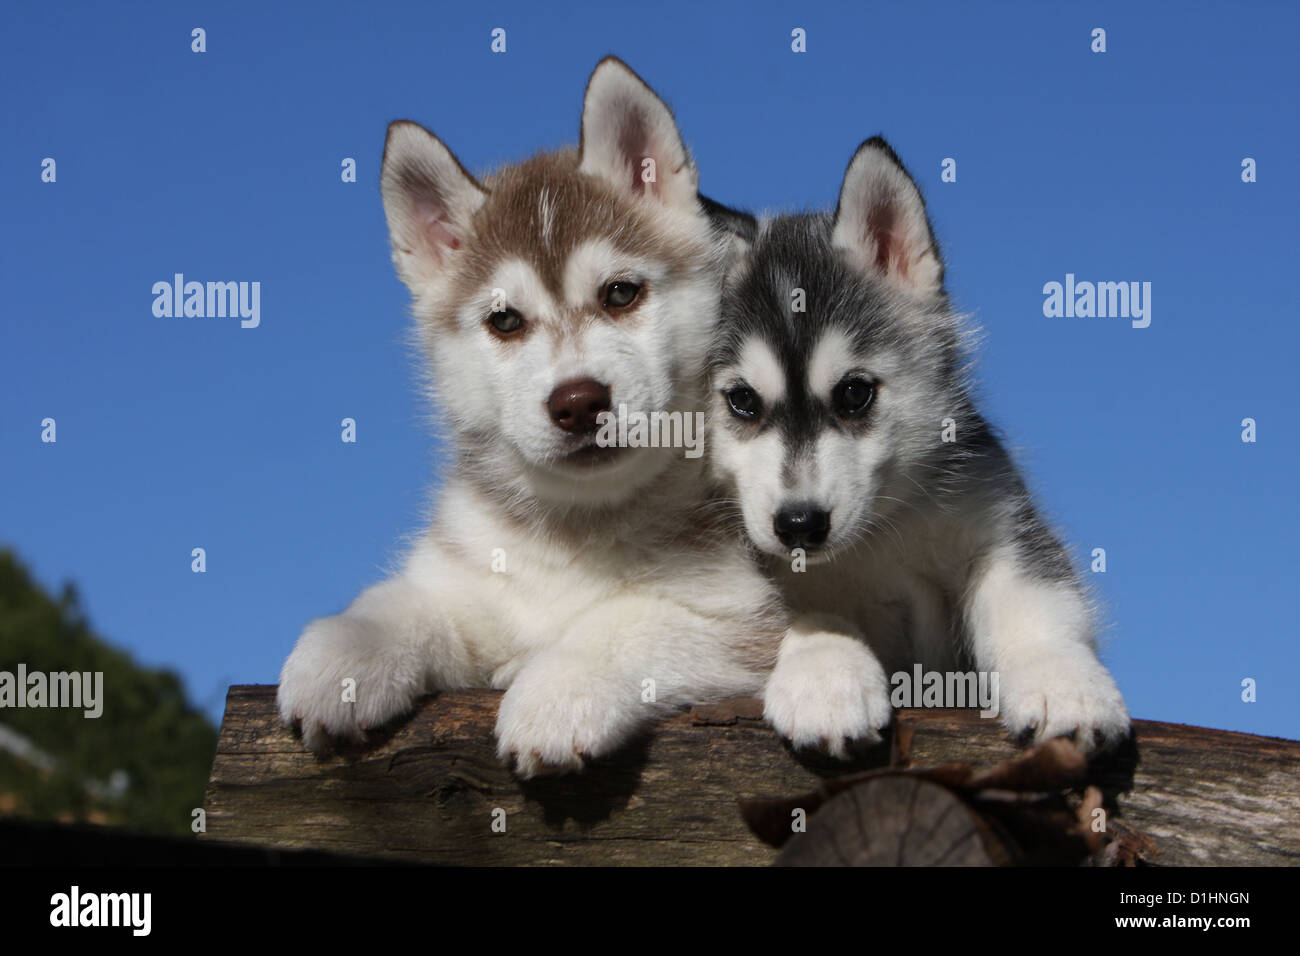 dog siberian husky two puppies black and white white and